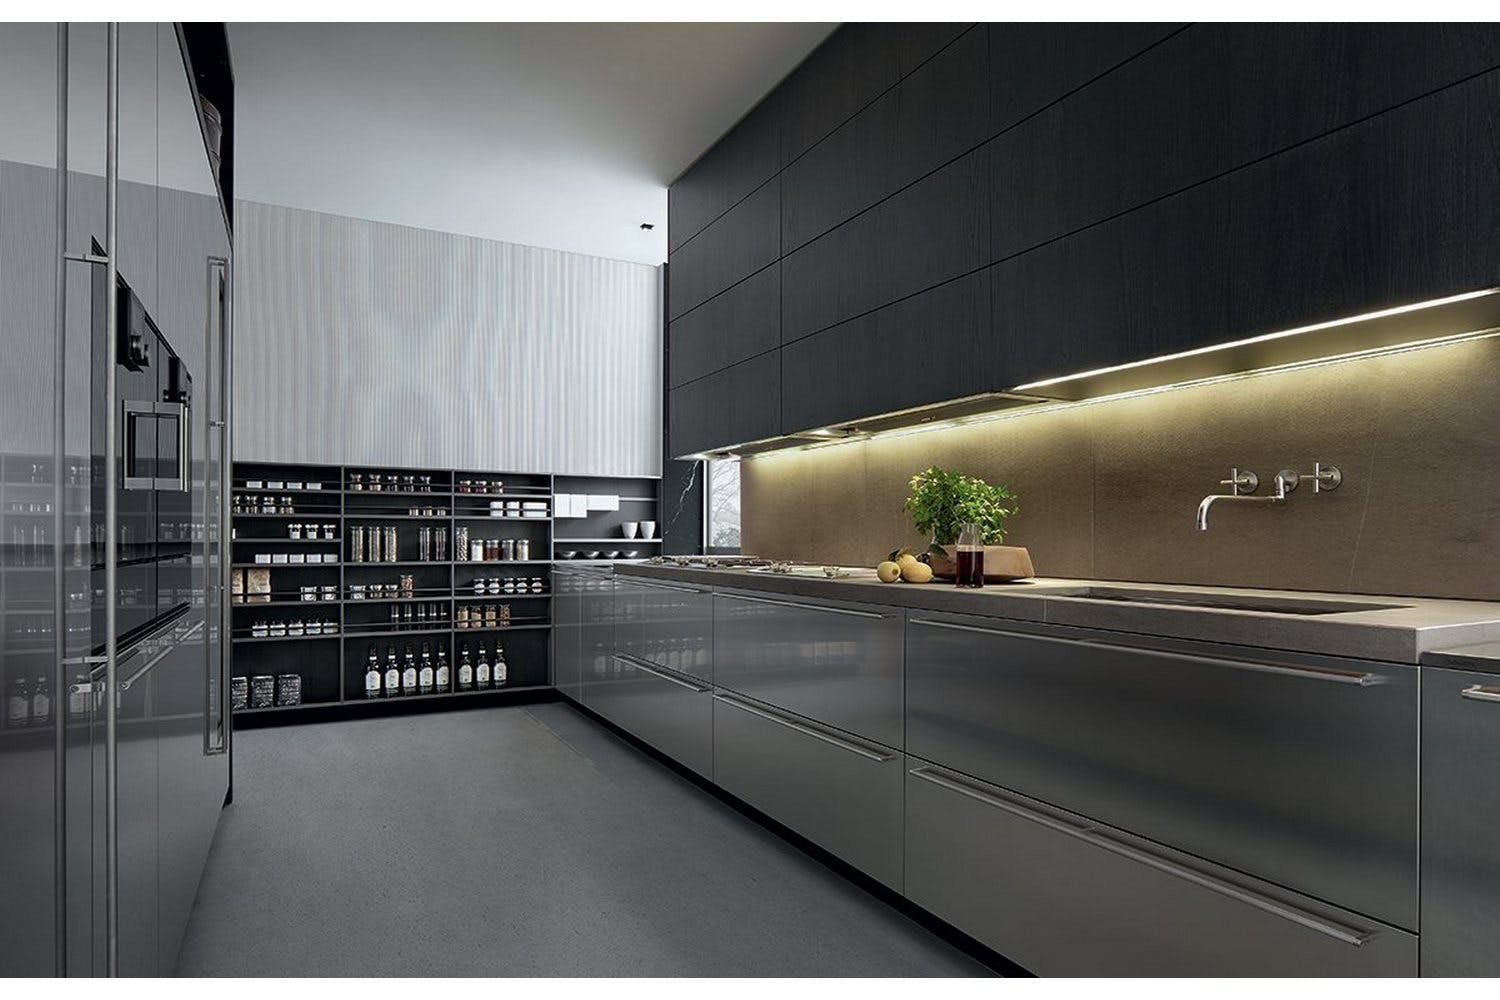 Poliform Kitchen Design. My Planet Kitchen by R D Varenna for Poliform Modern Kitchens  Luxury Contemporary Design